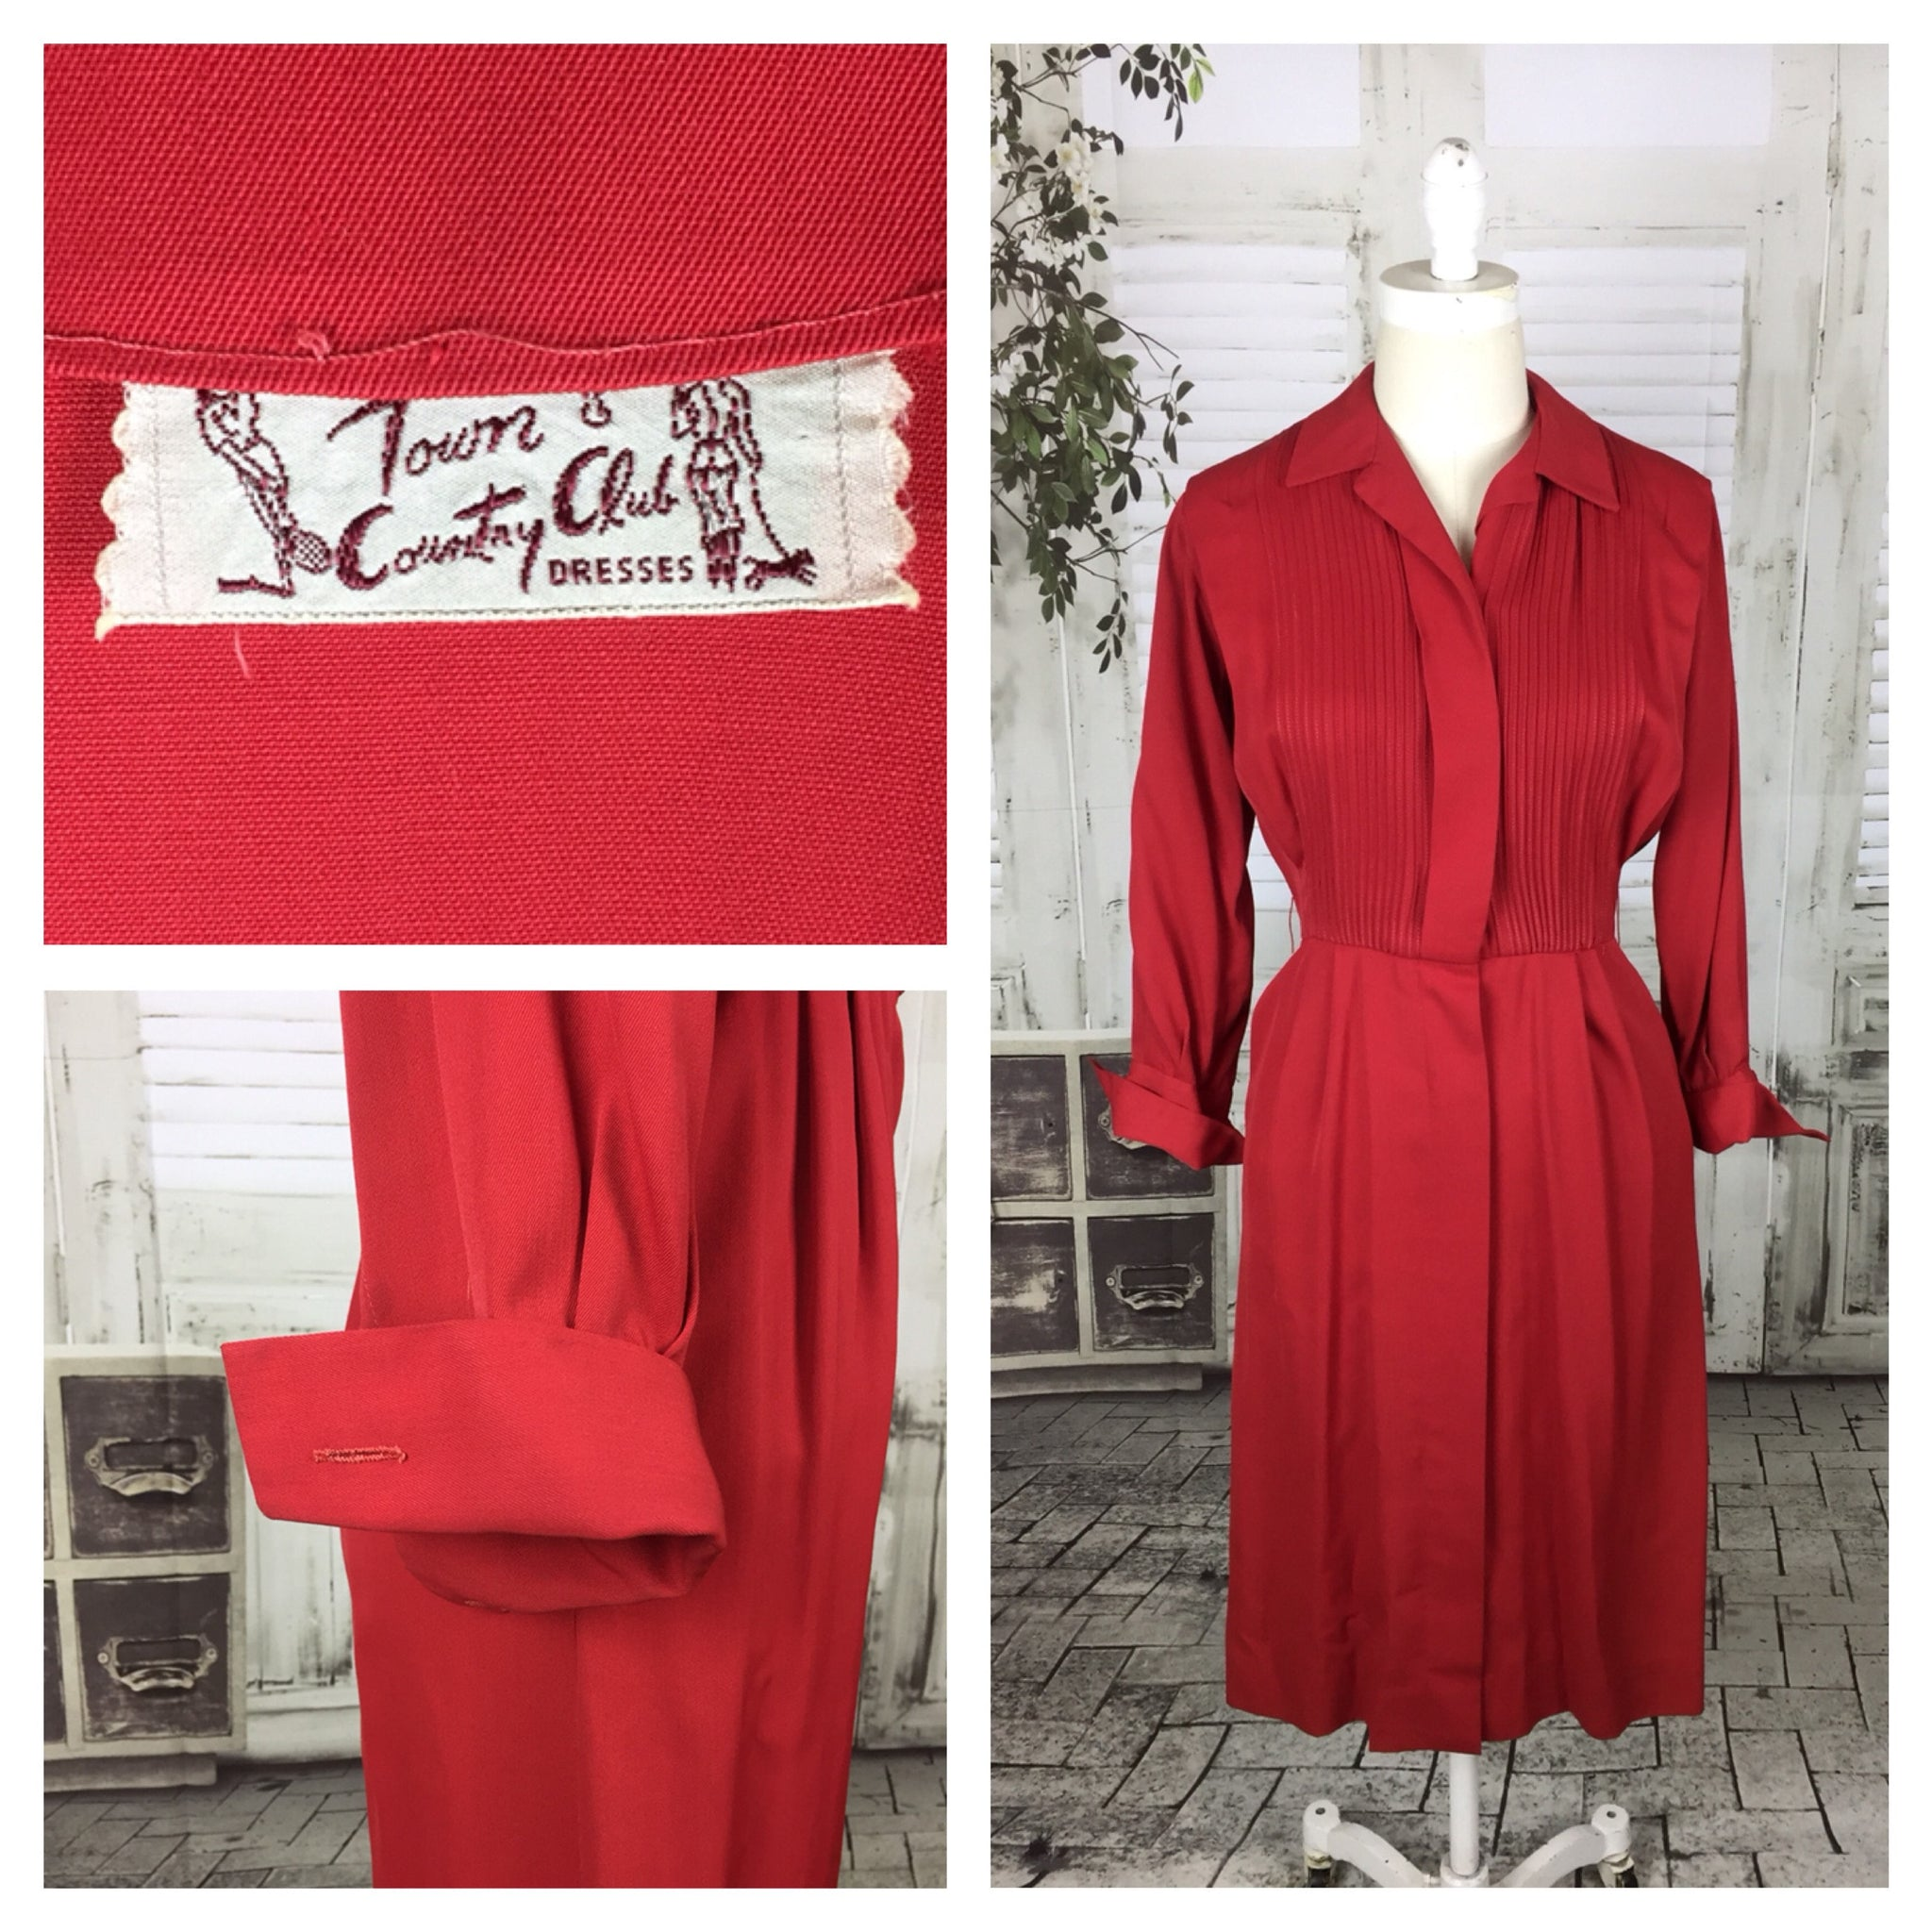 Original 1950s 50s Vintage Red Gabardine Button Up Day Dress By Town And Country Club Dresses